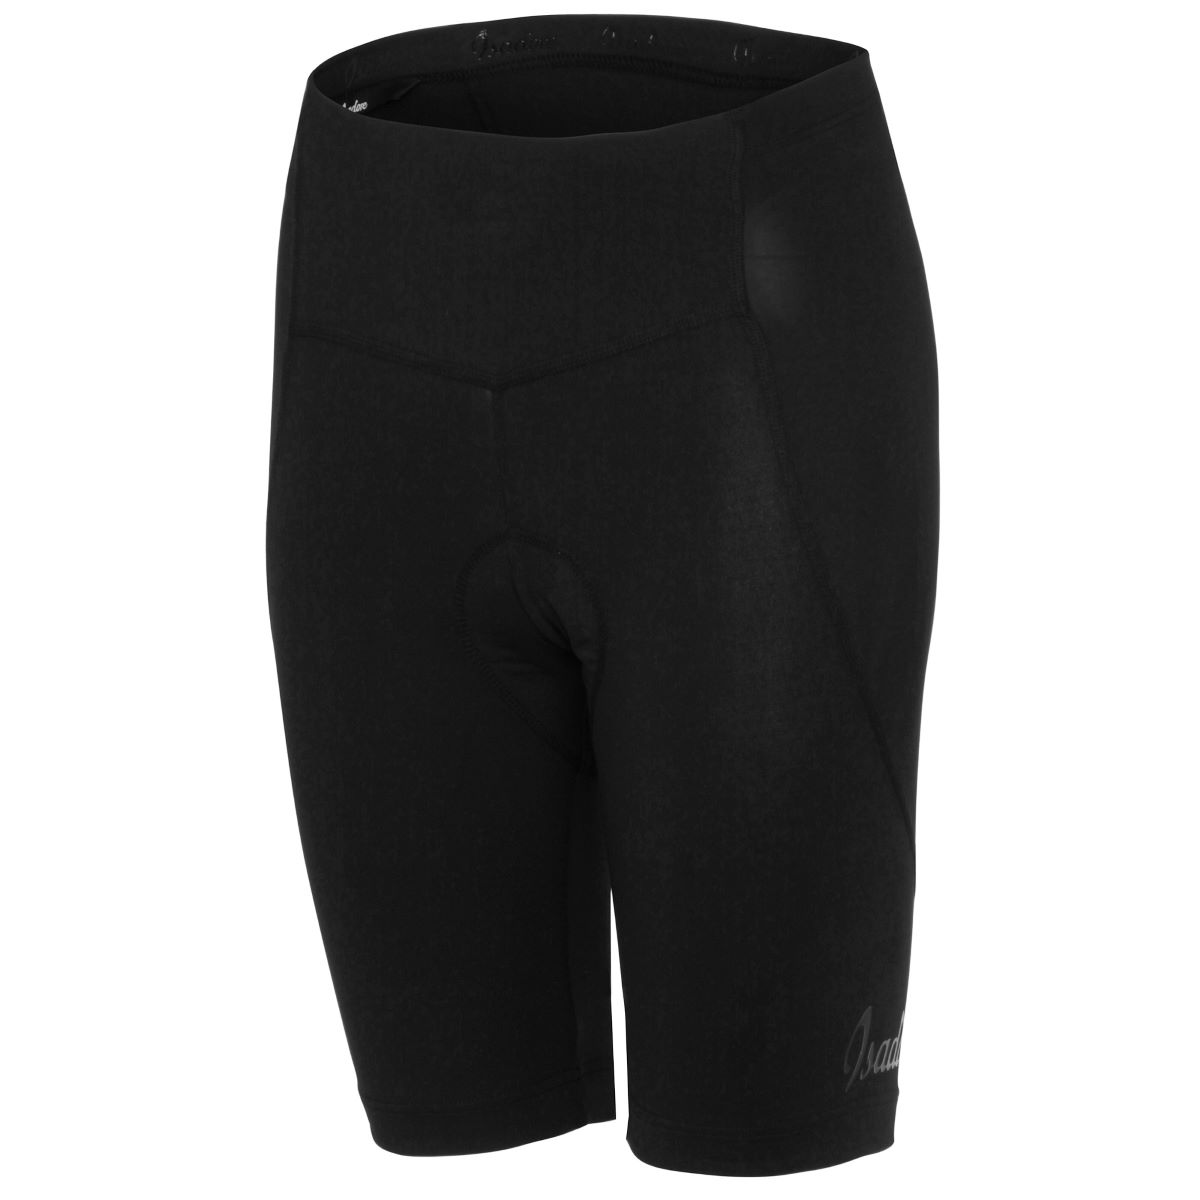 Cuissard court Femme Isadore - S Noir Cuissards courts